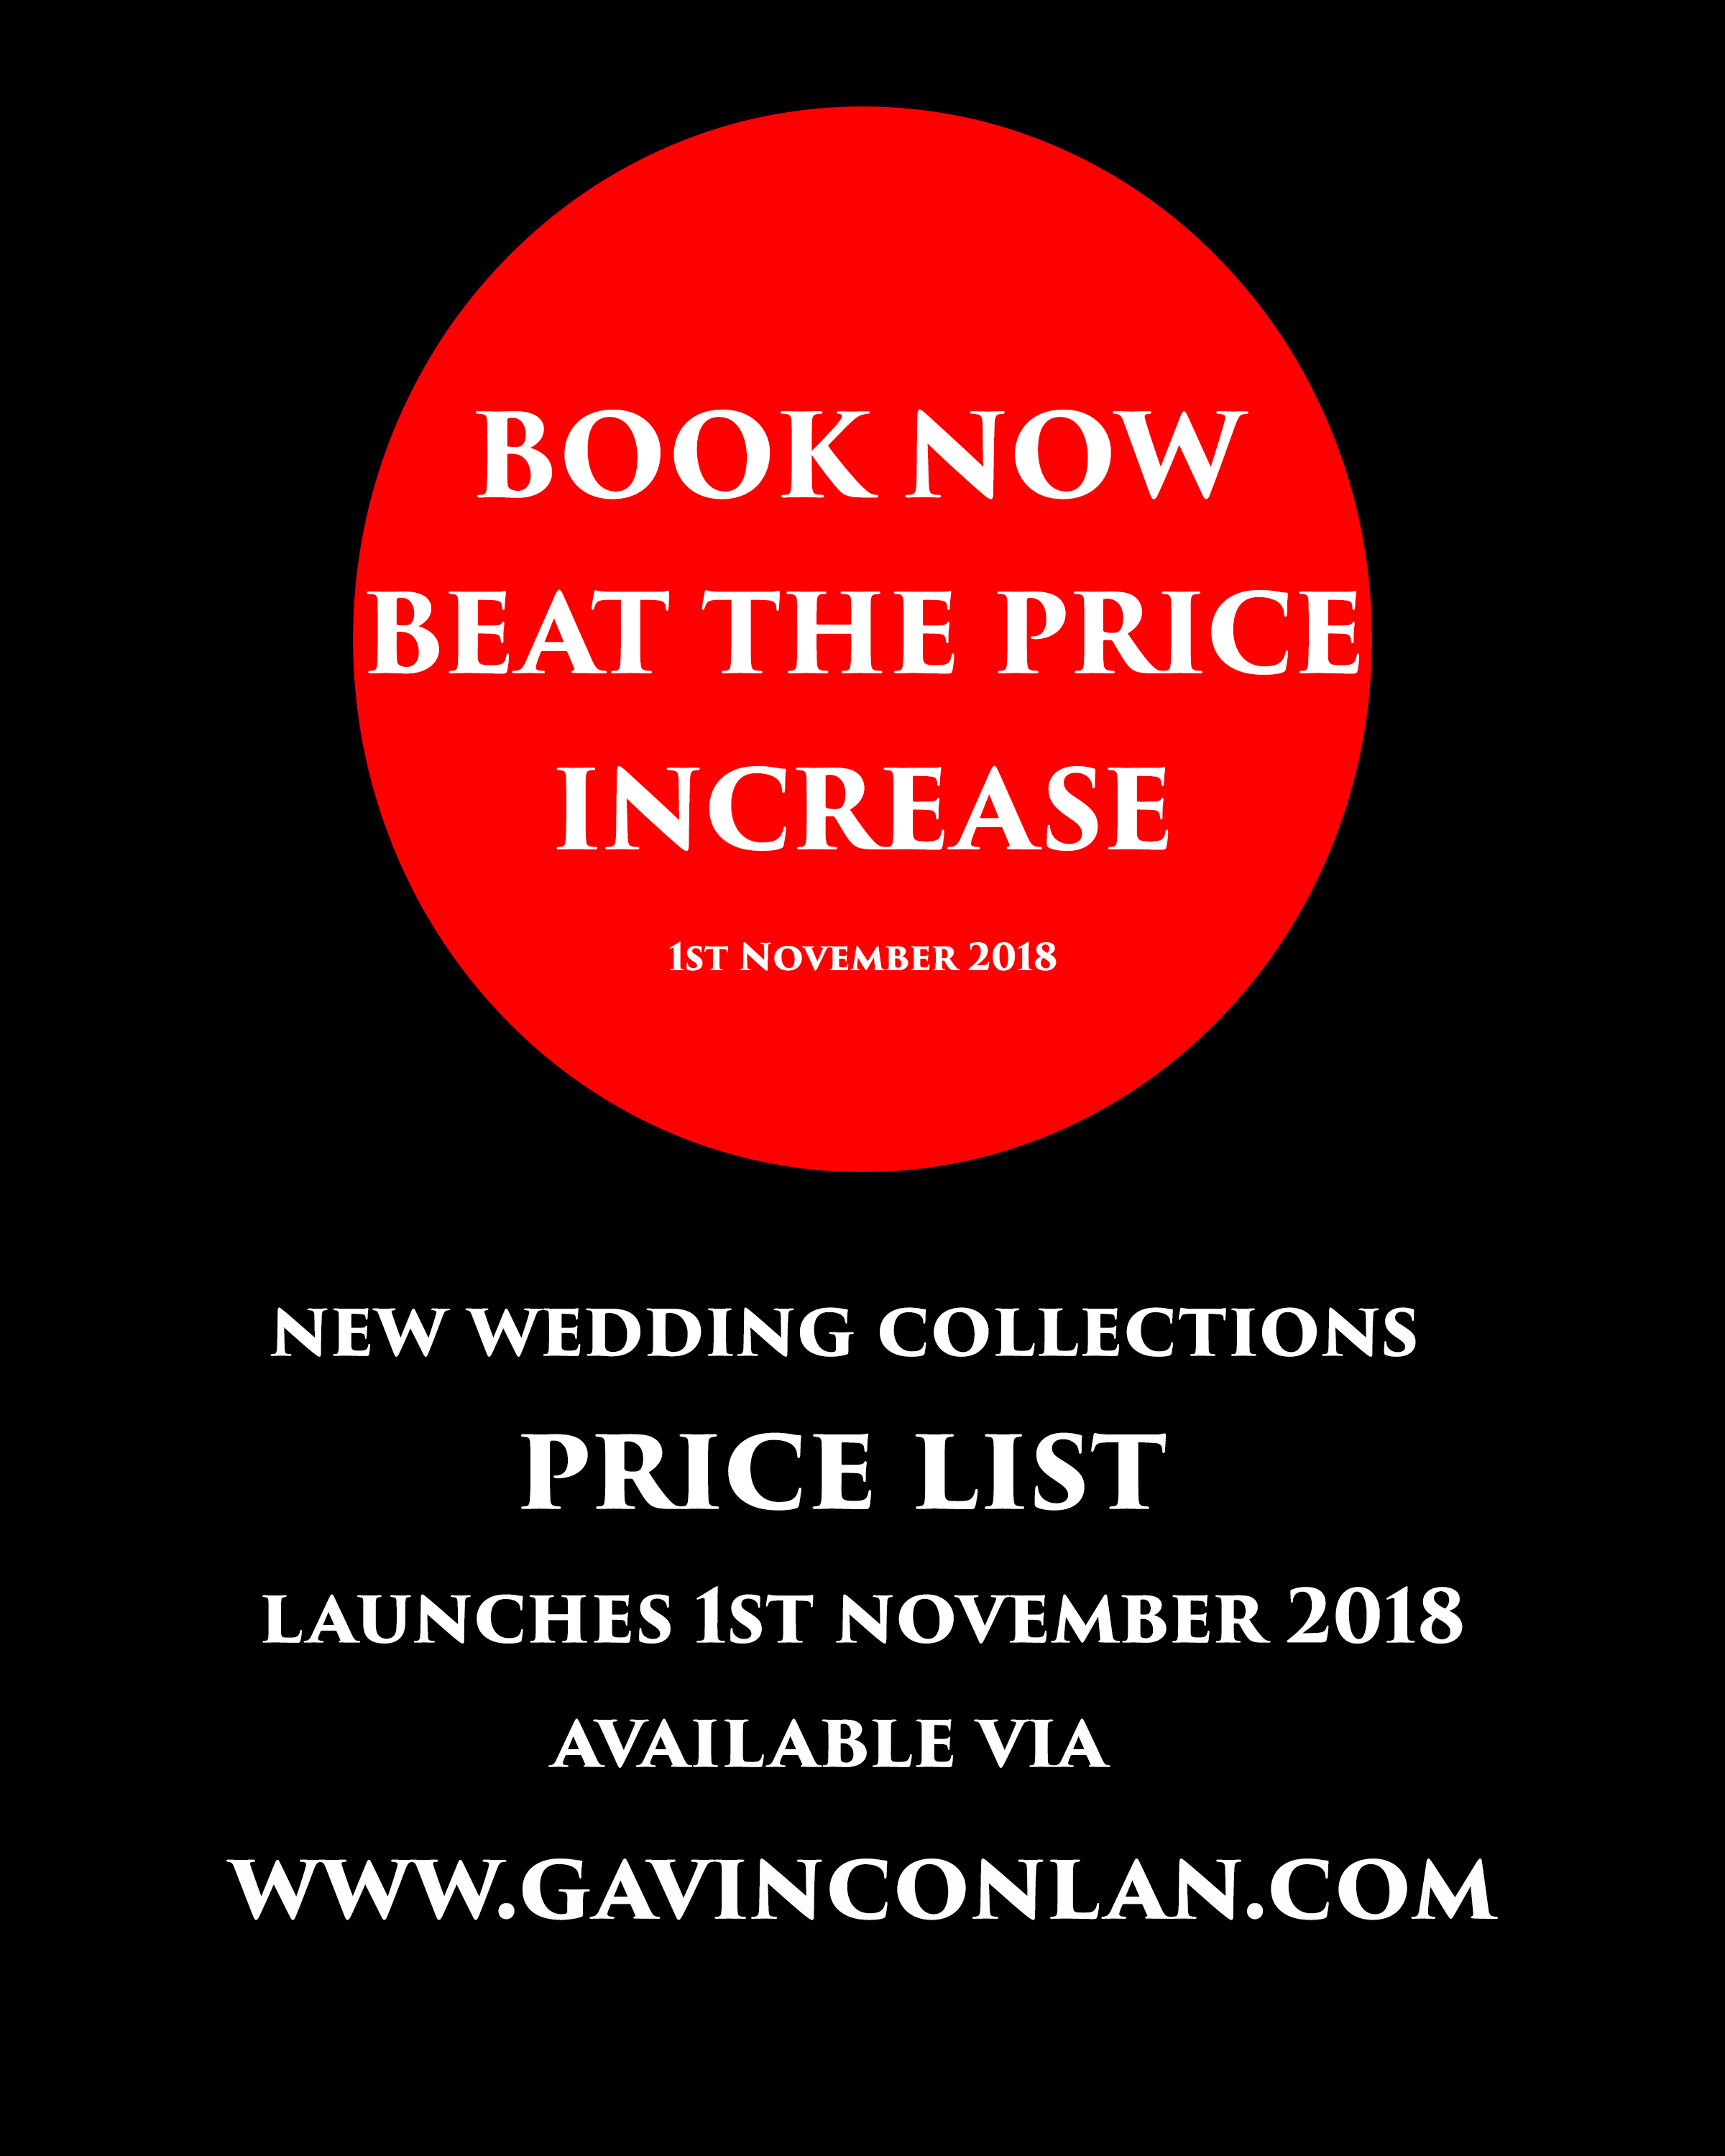 book now beat the price increase - new wedding collections price list launches 1st November 2018 available via  www.gavinconlan.com